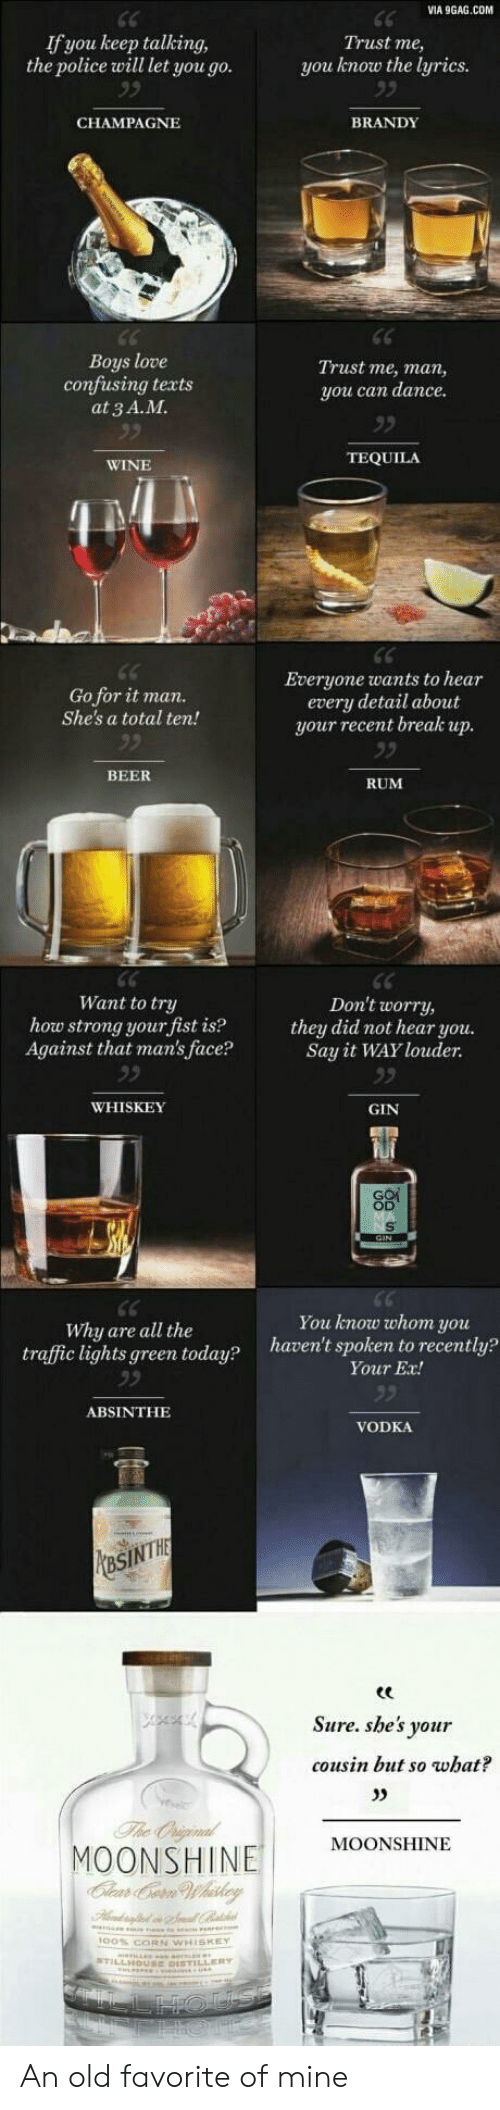 gin: VIA 9GAG.COM  If you keep talking,  the police will let you go.  Trust me,  you know the lyrics.  BRANDY  CHAMPAGNЕ  Boys love  confusing texts  at 3 A.M.  Trust me, man,  you can dancе.  TEQUILA  WINE  Everyone wants to hear  every detail about  your recent break up.  Go for it man.  She's a total ten!  BEER  RUM  Want to try  how strong your fist is?  Against that man's face?  Don't worry,  they did not hear you.  Say it WAY louder  WHISKEY  GIN  You know whoт yои  haven't spoken to recently?  Why are all the  traffic lights green today?  Your Ex!  ABSINTHE  VODKA  MaSINTHE  Sure.she's your  cousin but so what?  The Oniginal  MOONSHINE  Clear Ce Whaskey  MOONSHINE An old favorite of mine